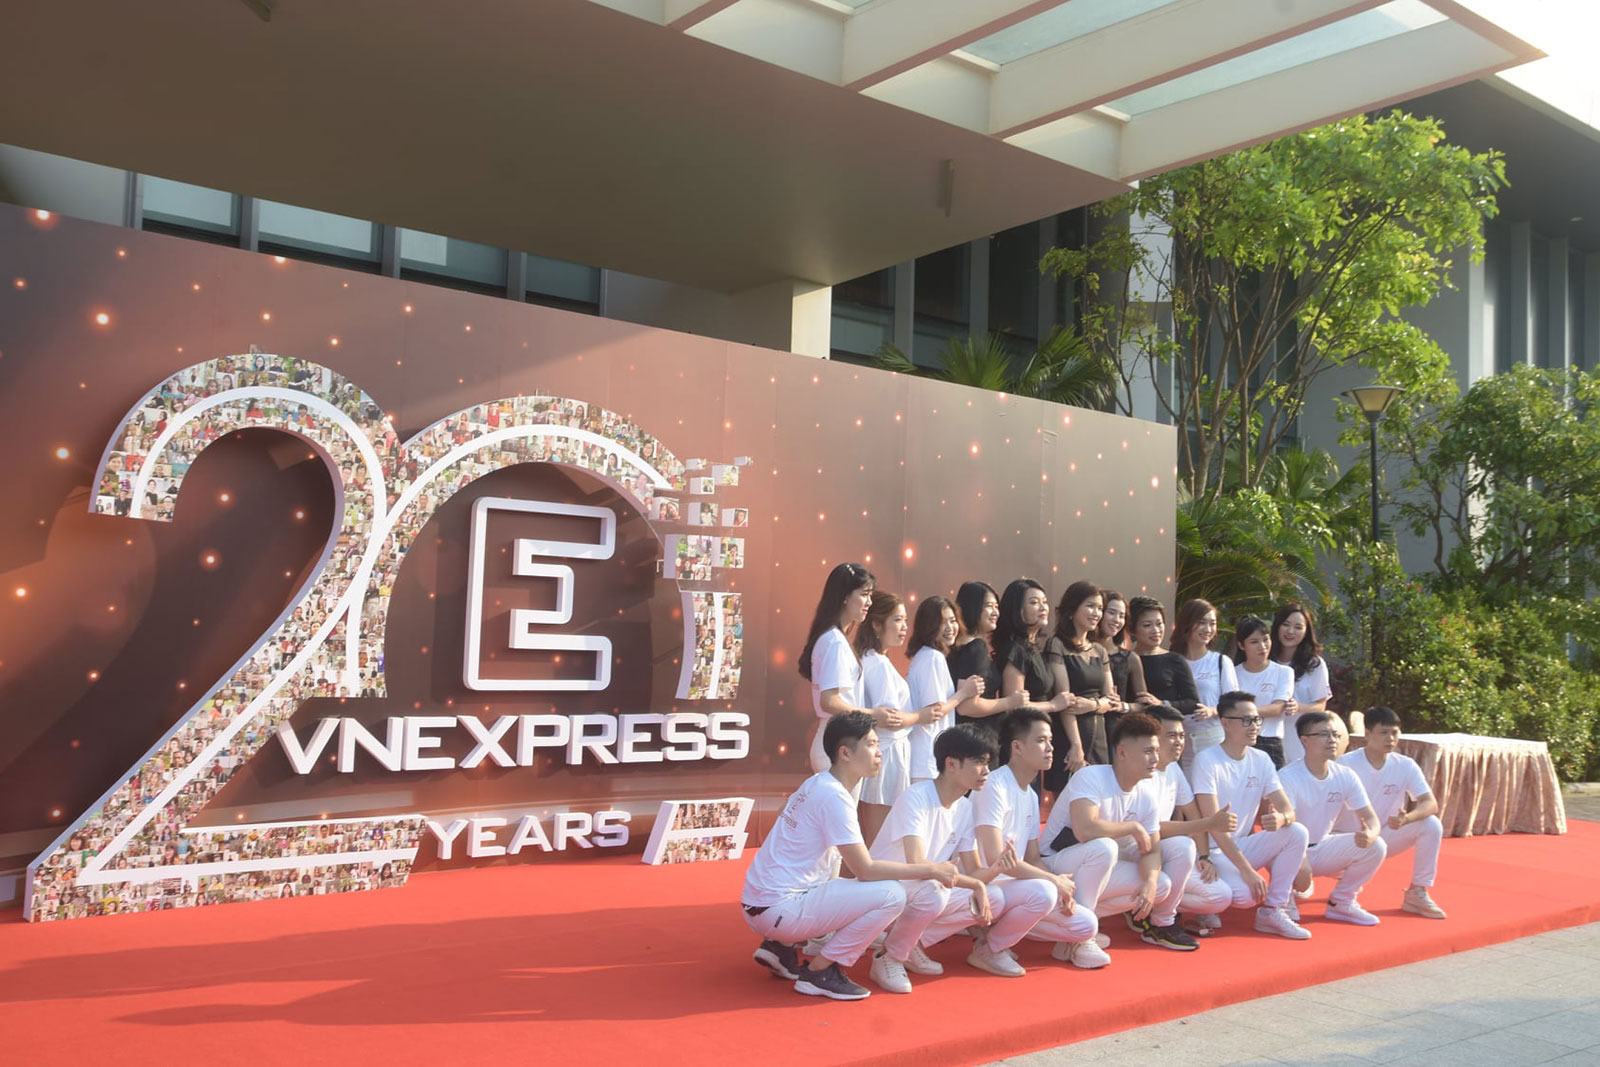 20TH ANNIVERSARY OF VNEXPRESS